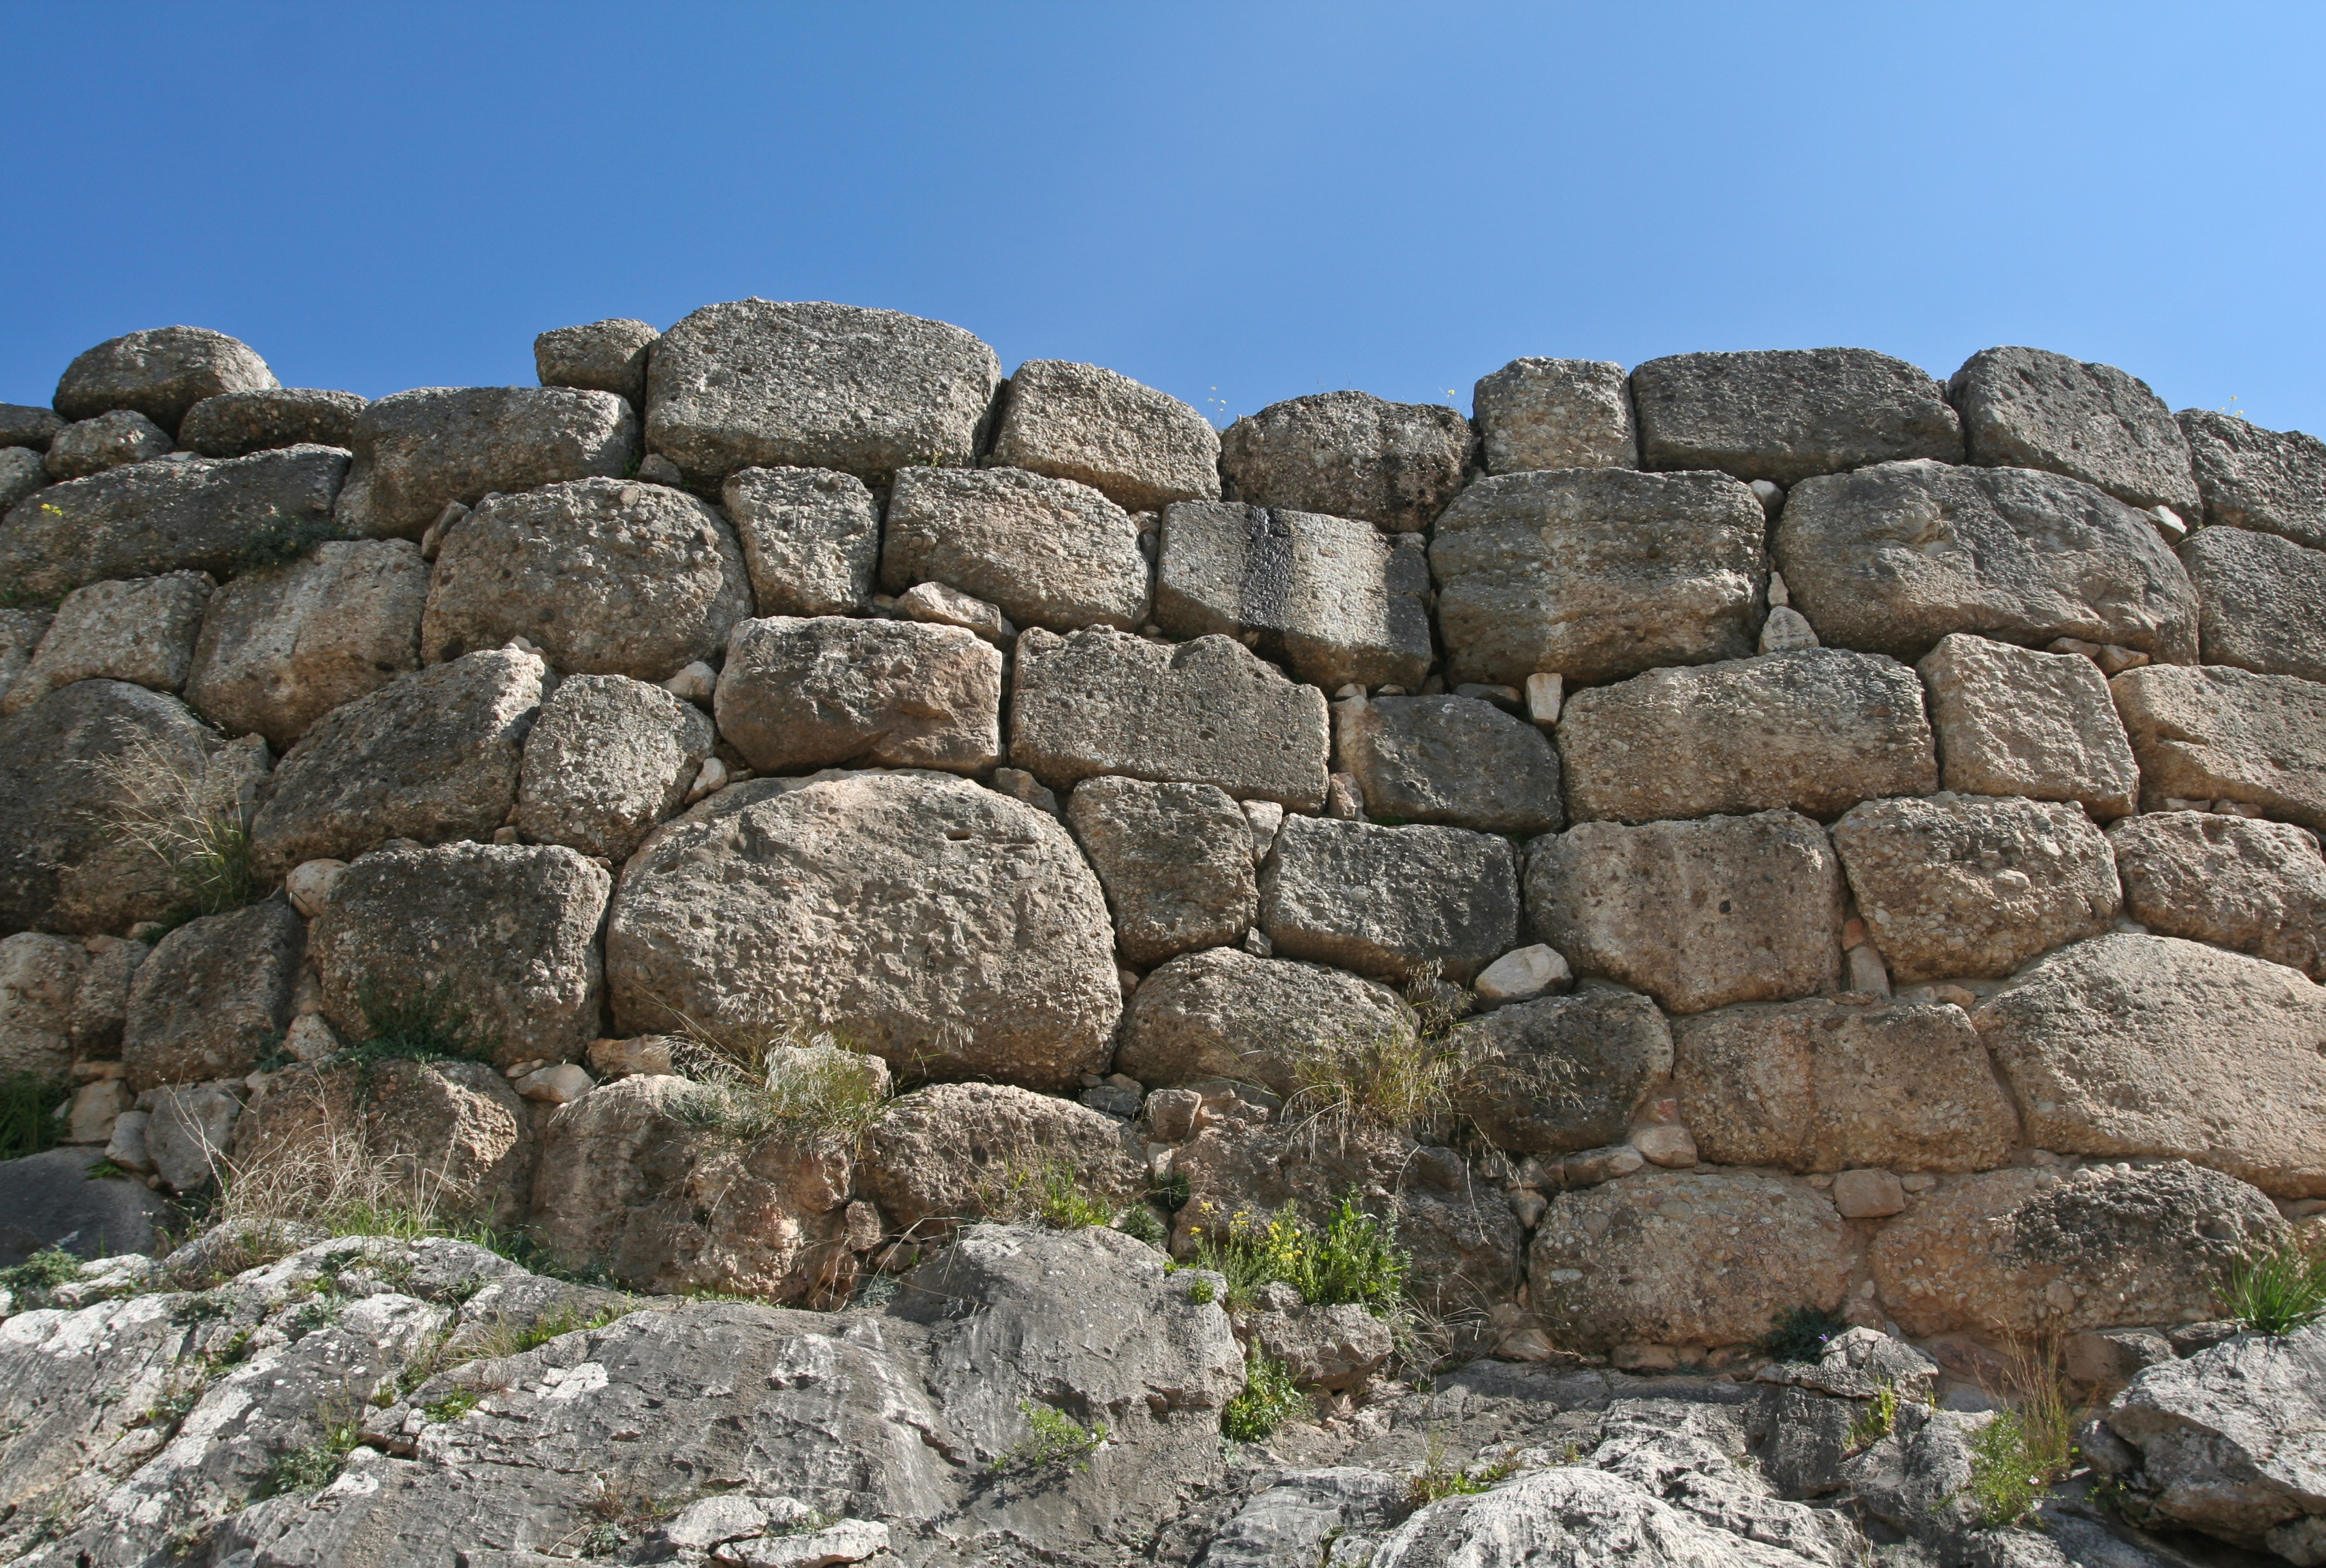 A wall of gigantic rounded stones roughly shaped and placed together with a few smaller stones to fill gaps